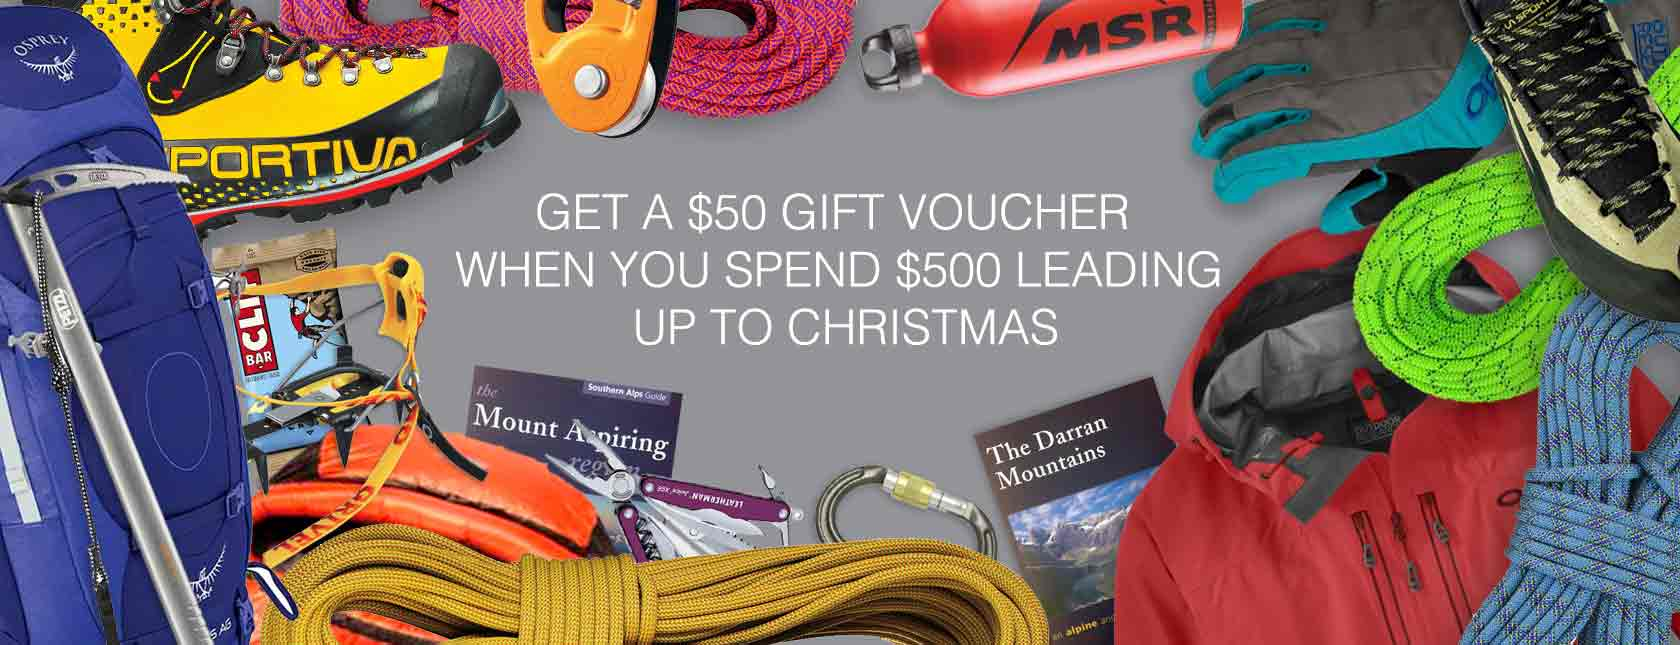 Mountain Equipment Christmas Gift Voucher Giveaway